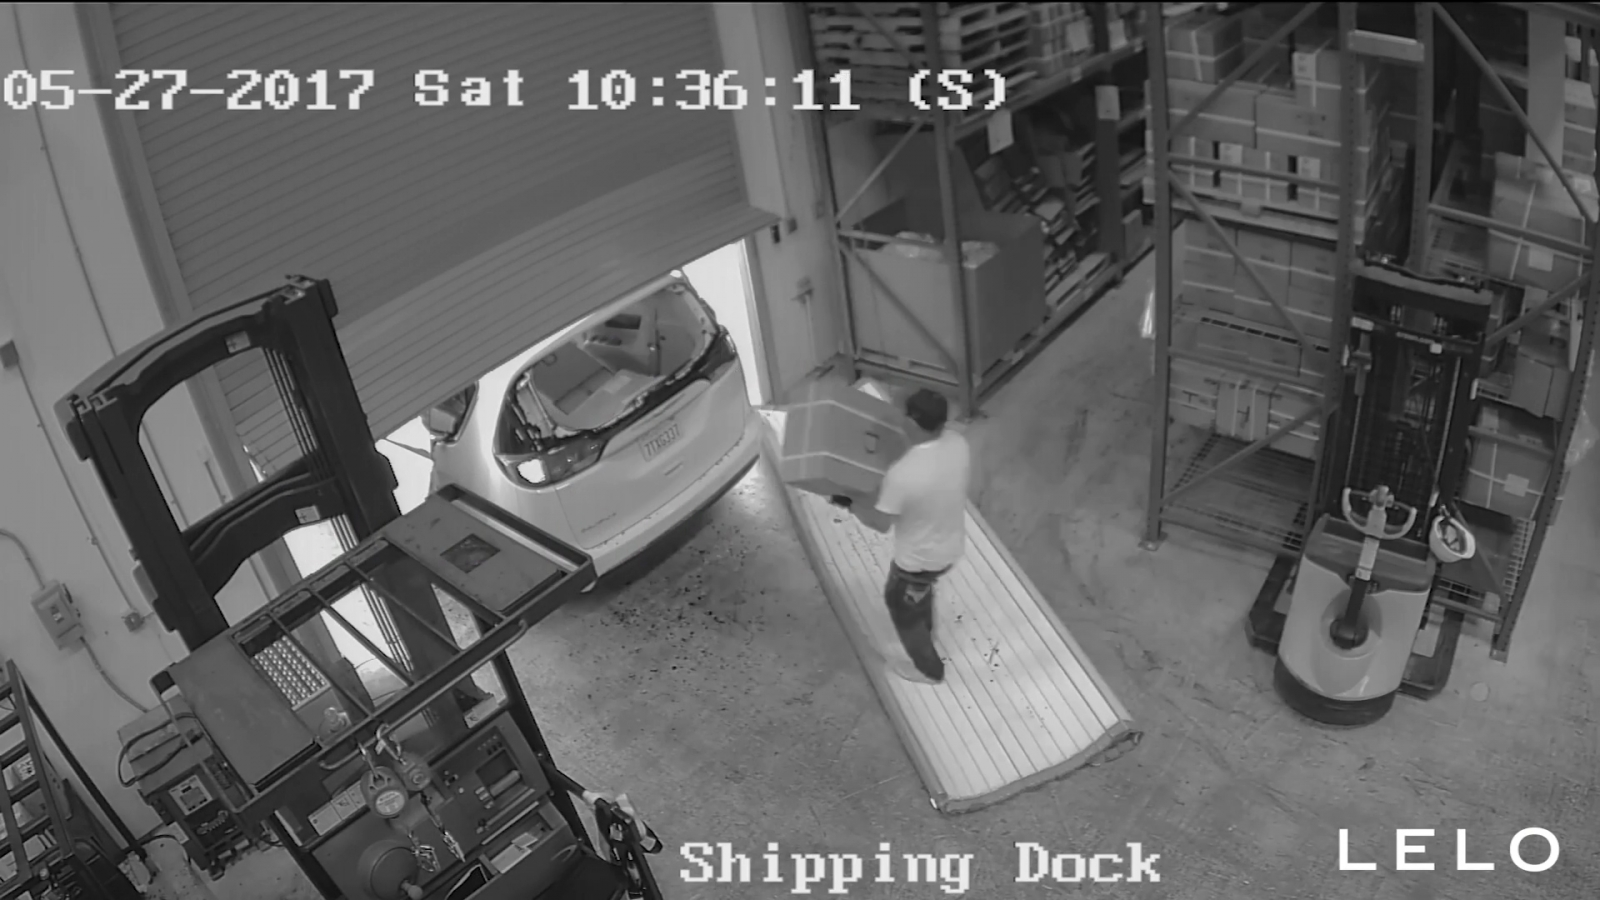 thirty-thousand-condoms-and-15000-worth-of-sex-toys-stolen-in-ram-raid-theft